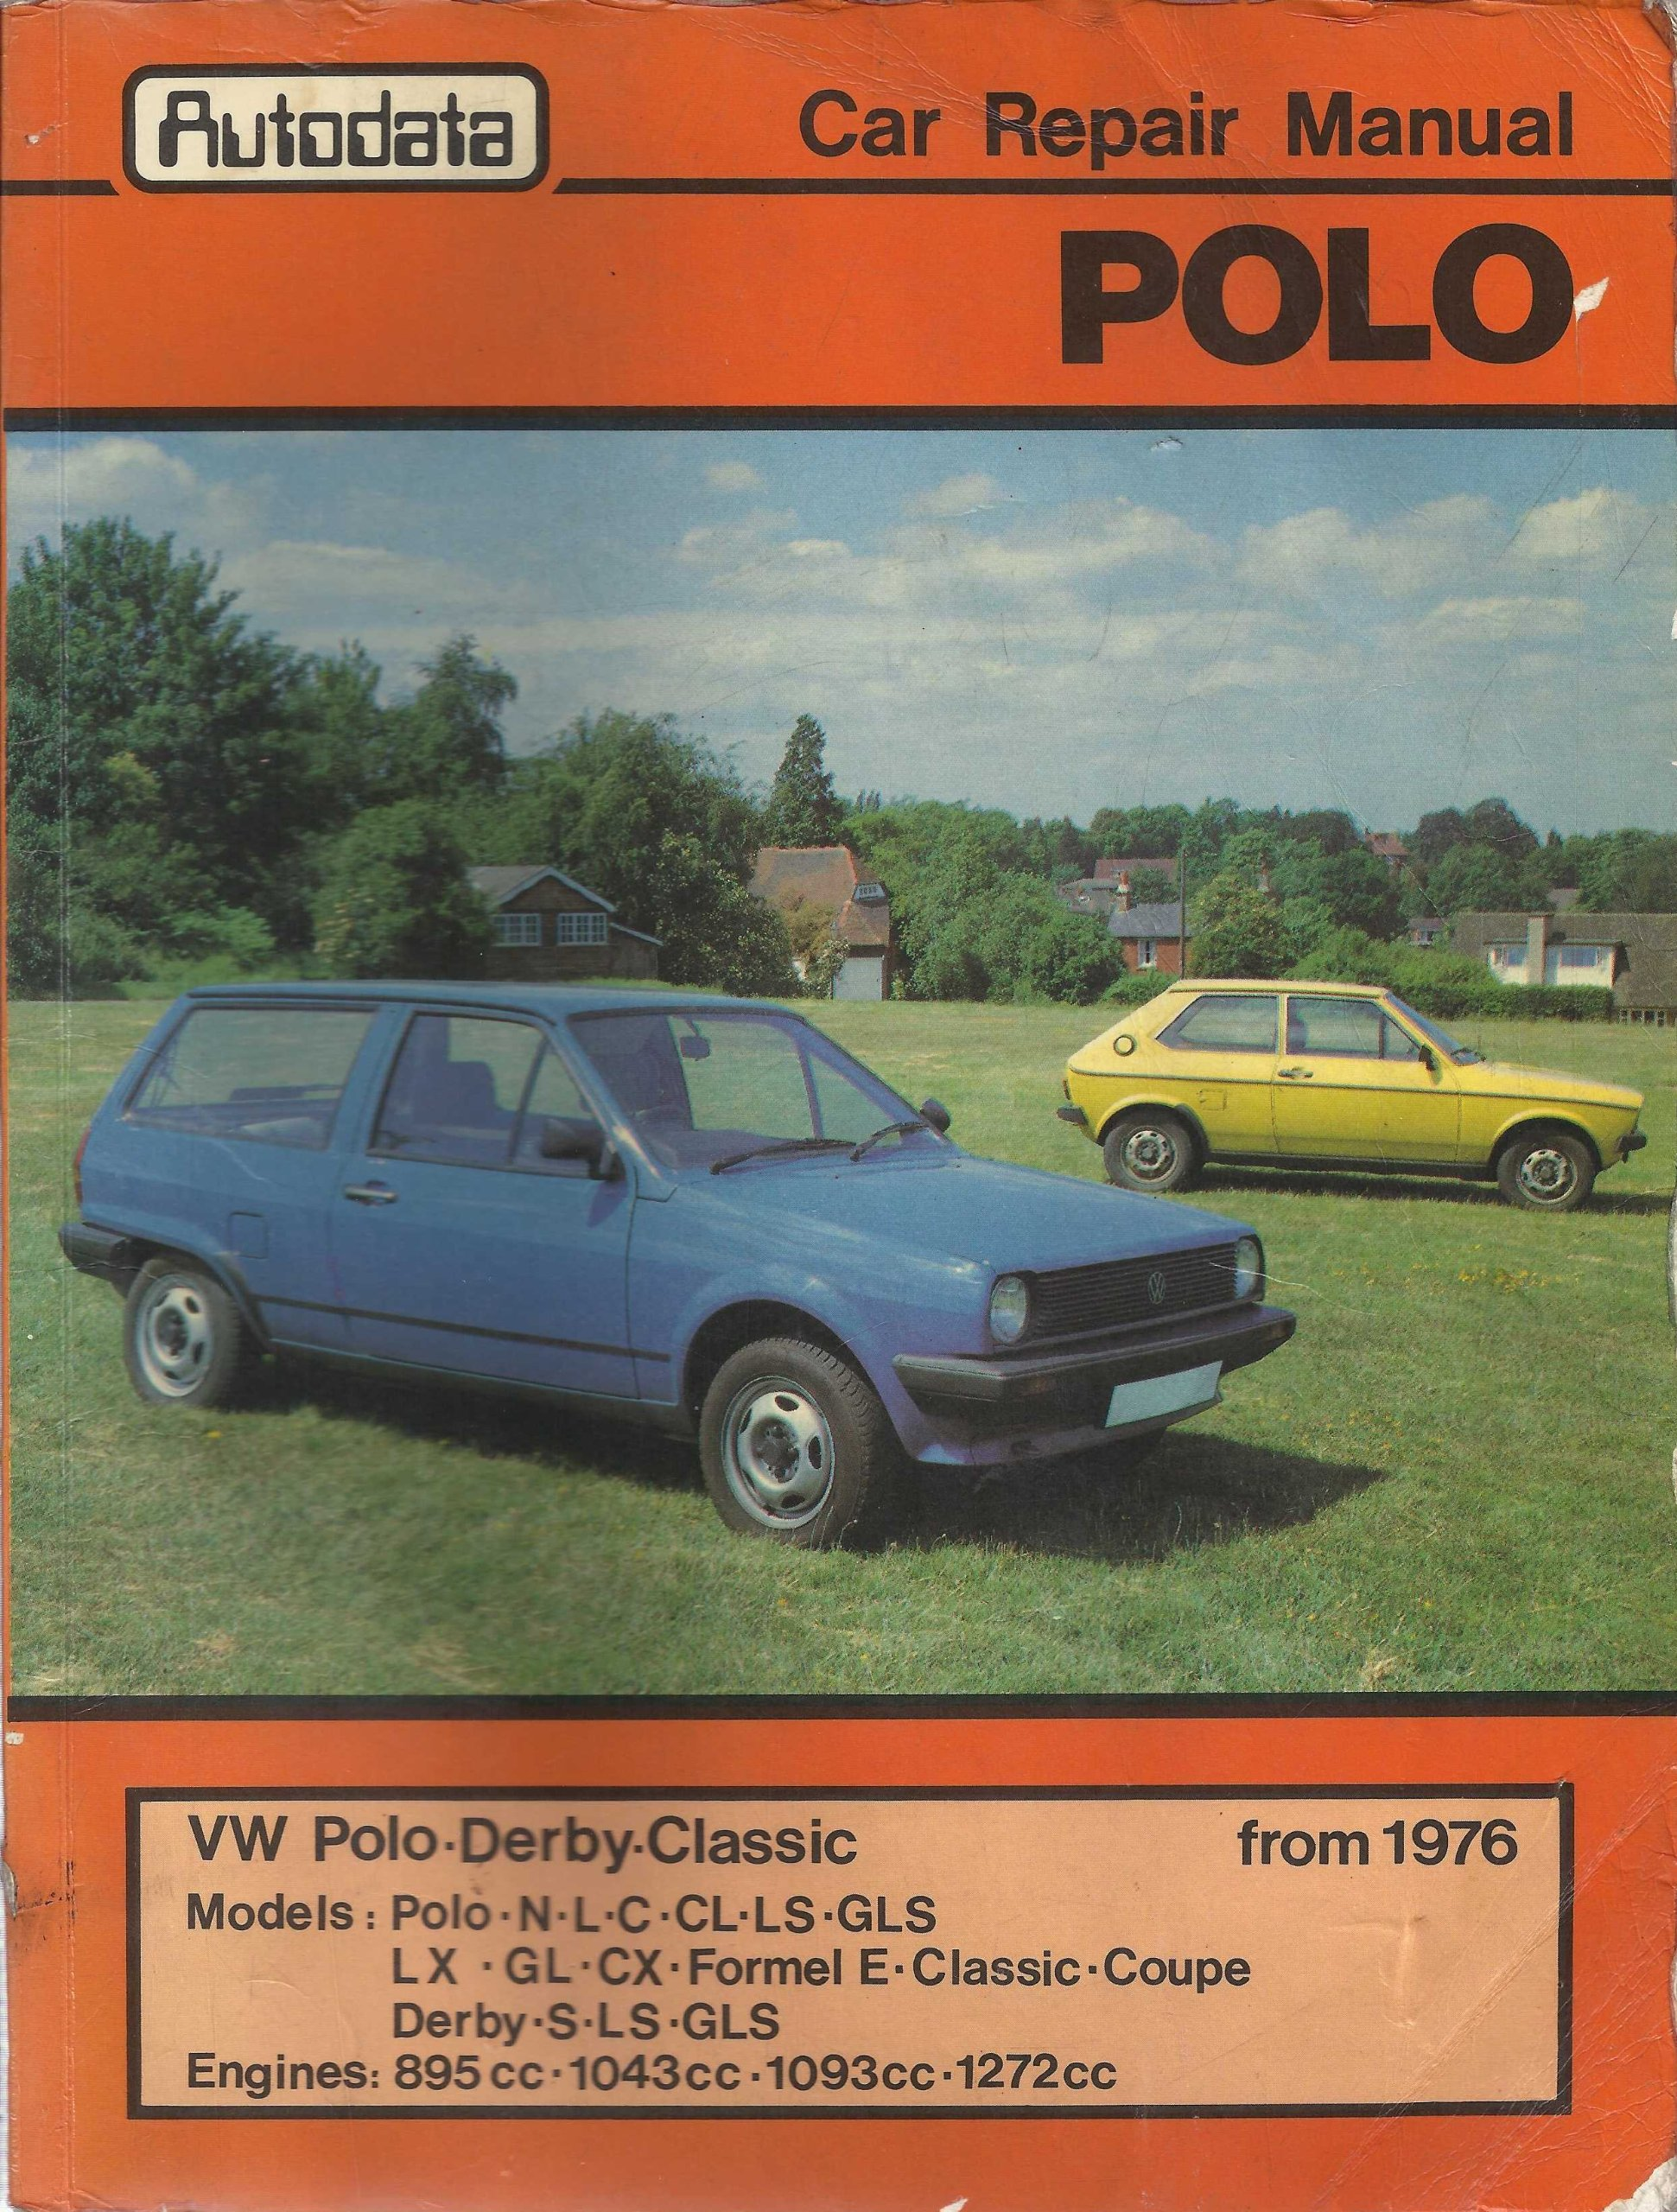 Volkswagen Polo, Derby, Classic from 1976 Workshop Manual: Amazon ...